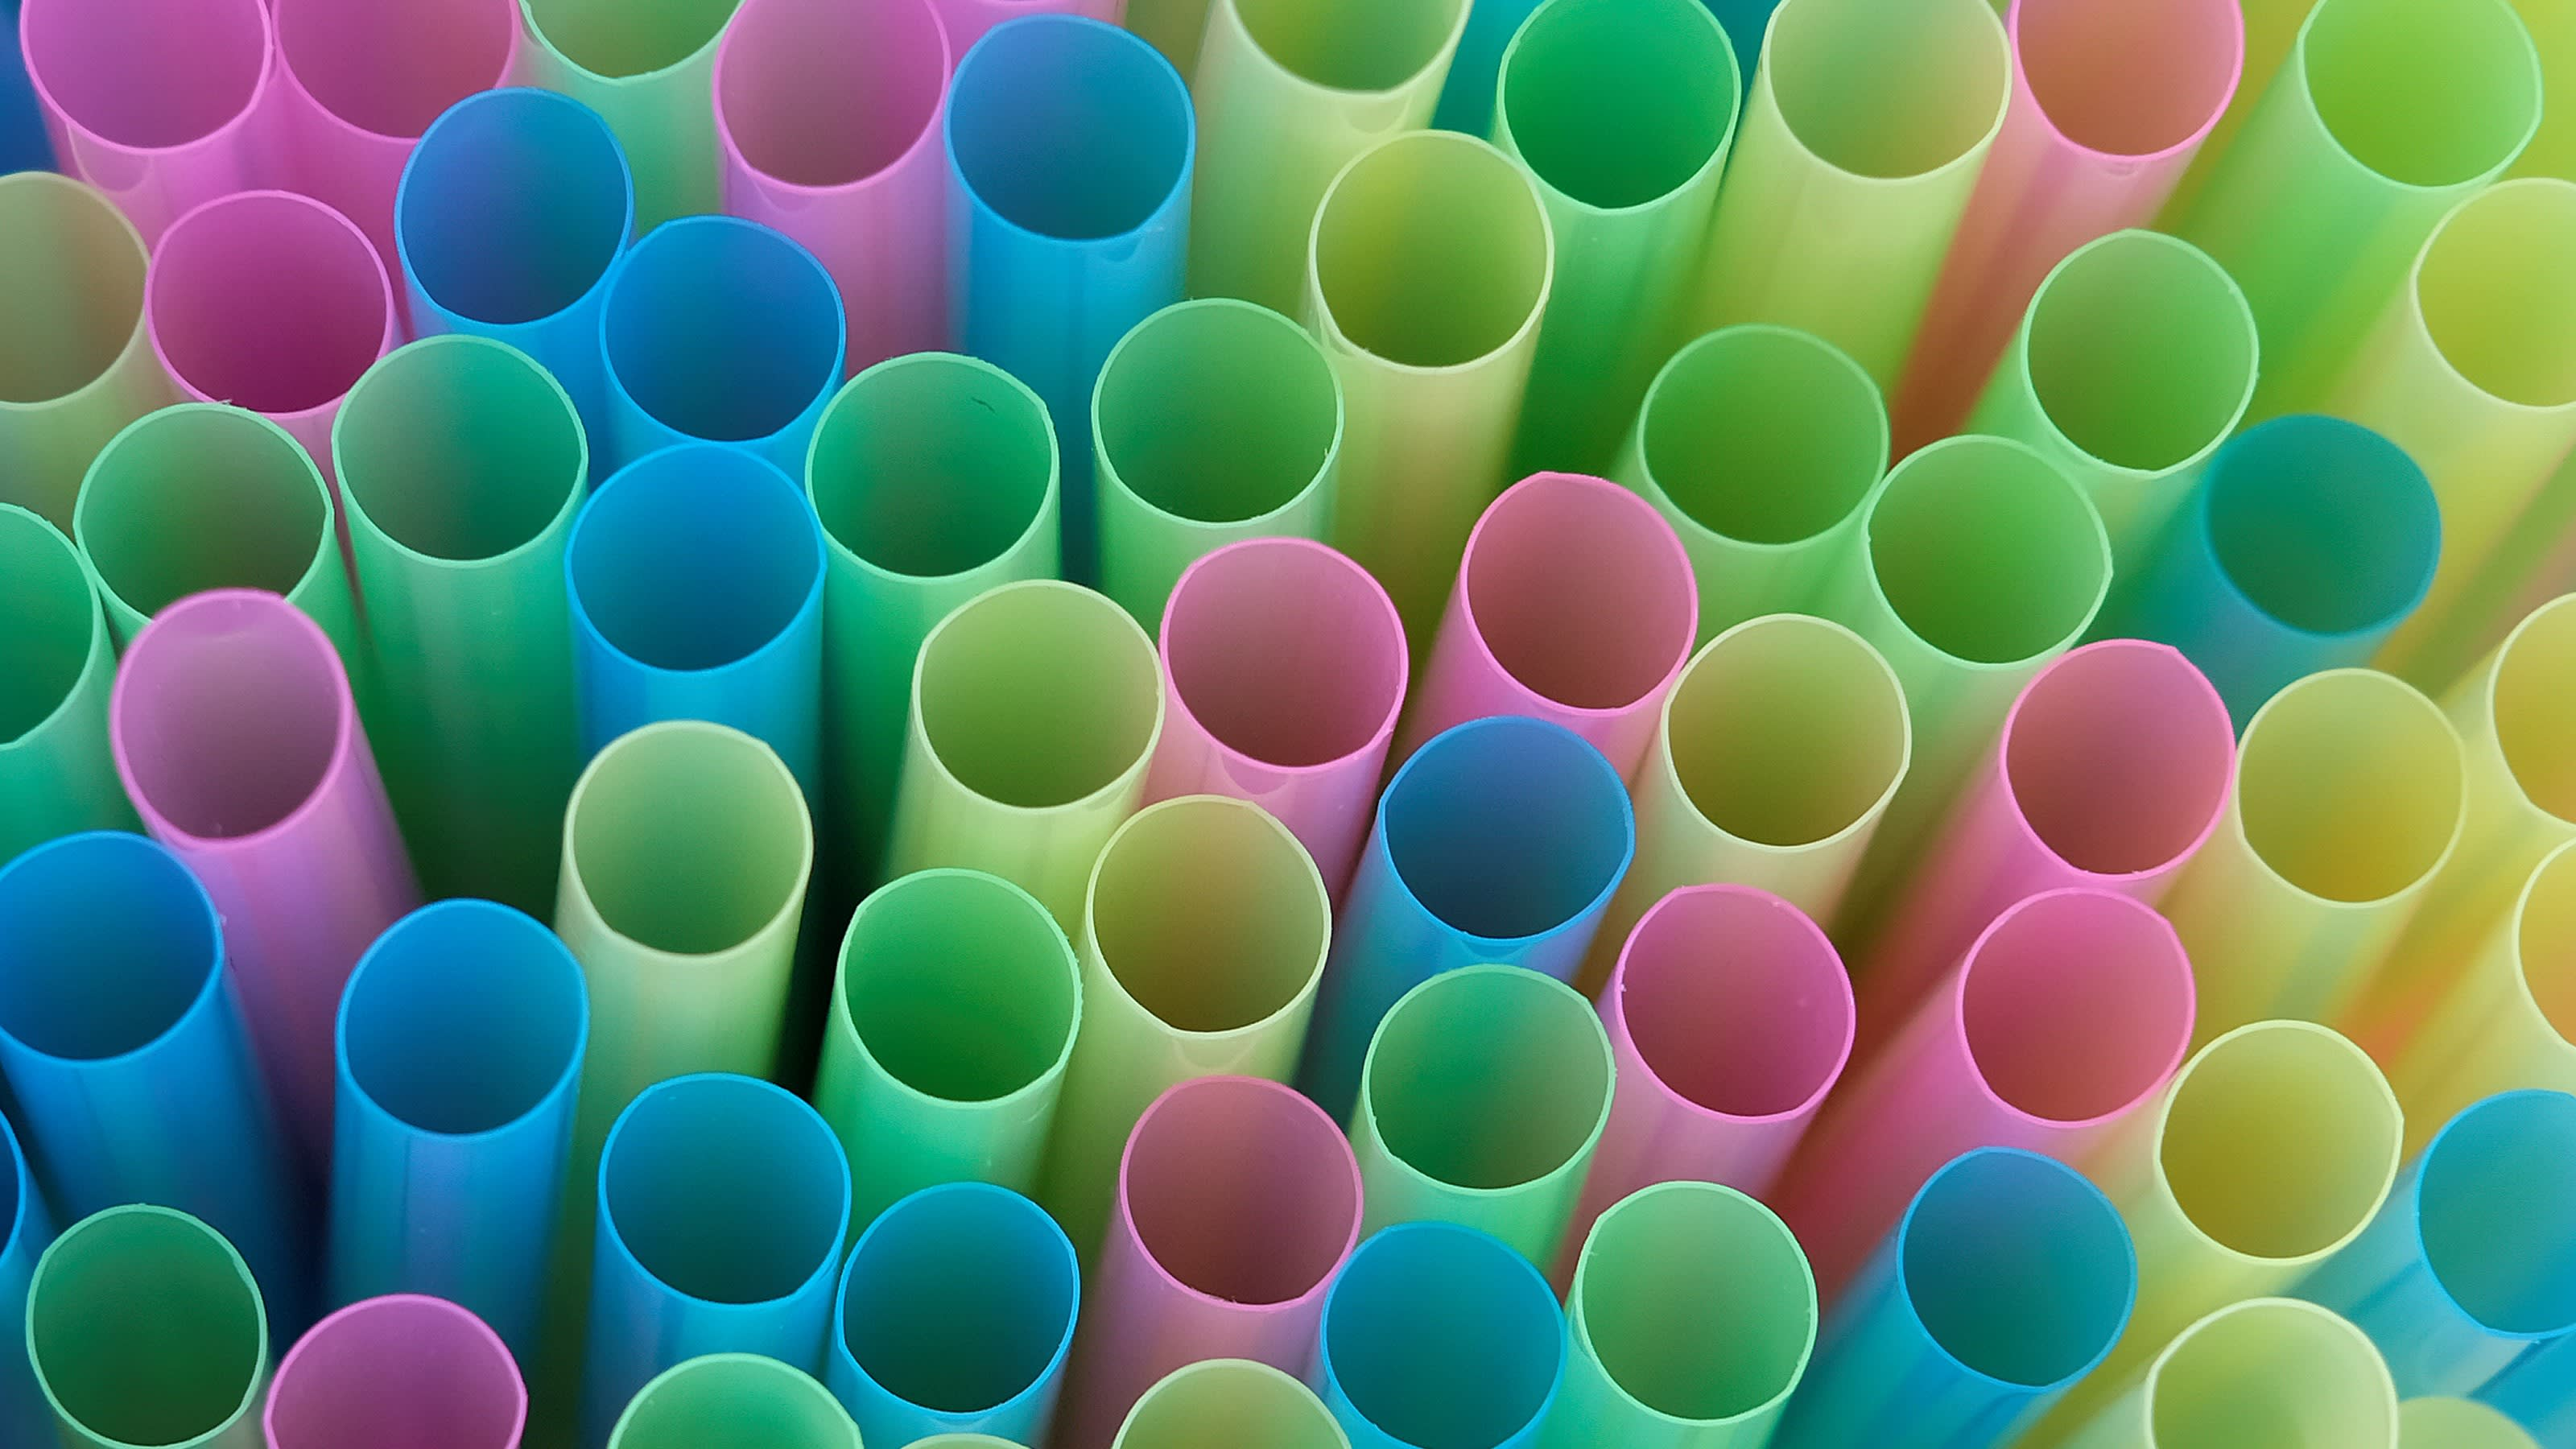 Nikkei Asian Review - plastic straws